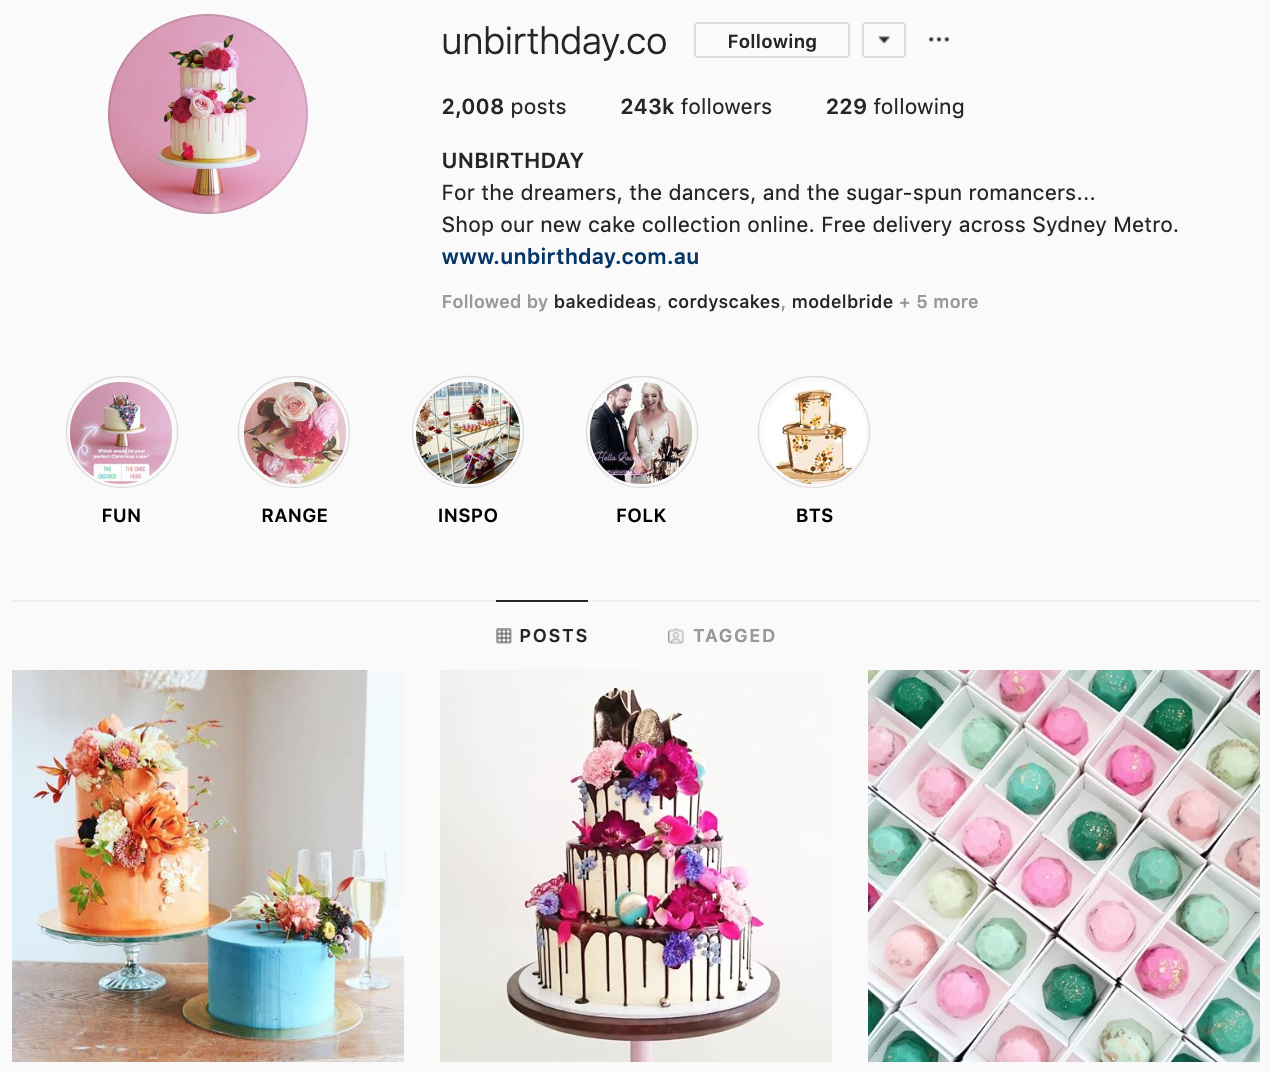 Unbirthday on Instagram - best brands to follow